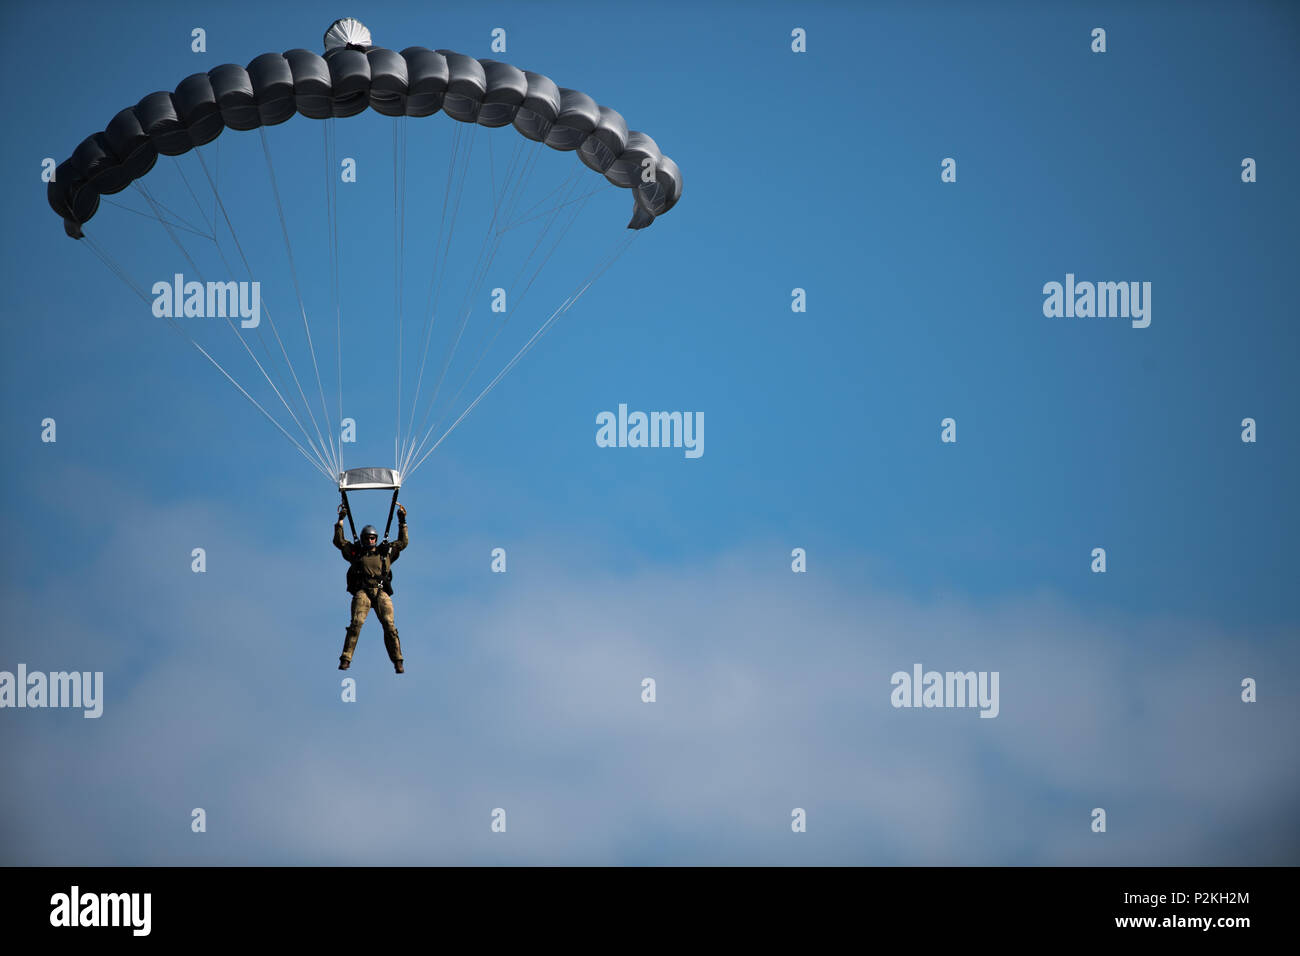 A pararescueman (PJ) glides through the air during a high-altitude, low opening (HALO) team competition in Sebastian,  Florida, Sept. 19, 2016.  The HALO jump is a method of delivering personnel, equipment, and supplies from a transport aircraft at a high altitude via free-fall parachute insertion. The event was part of the 2016 PJ Rodeo, which brought together past and present PJs from around the world, to showcase their unique mission and build camaraderie. (U.S. Air Force photo/Tech. Sgt. Brandon Shapiro) Stock Photo